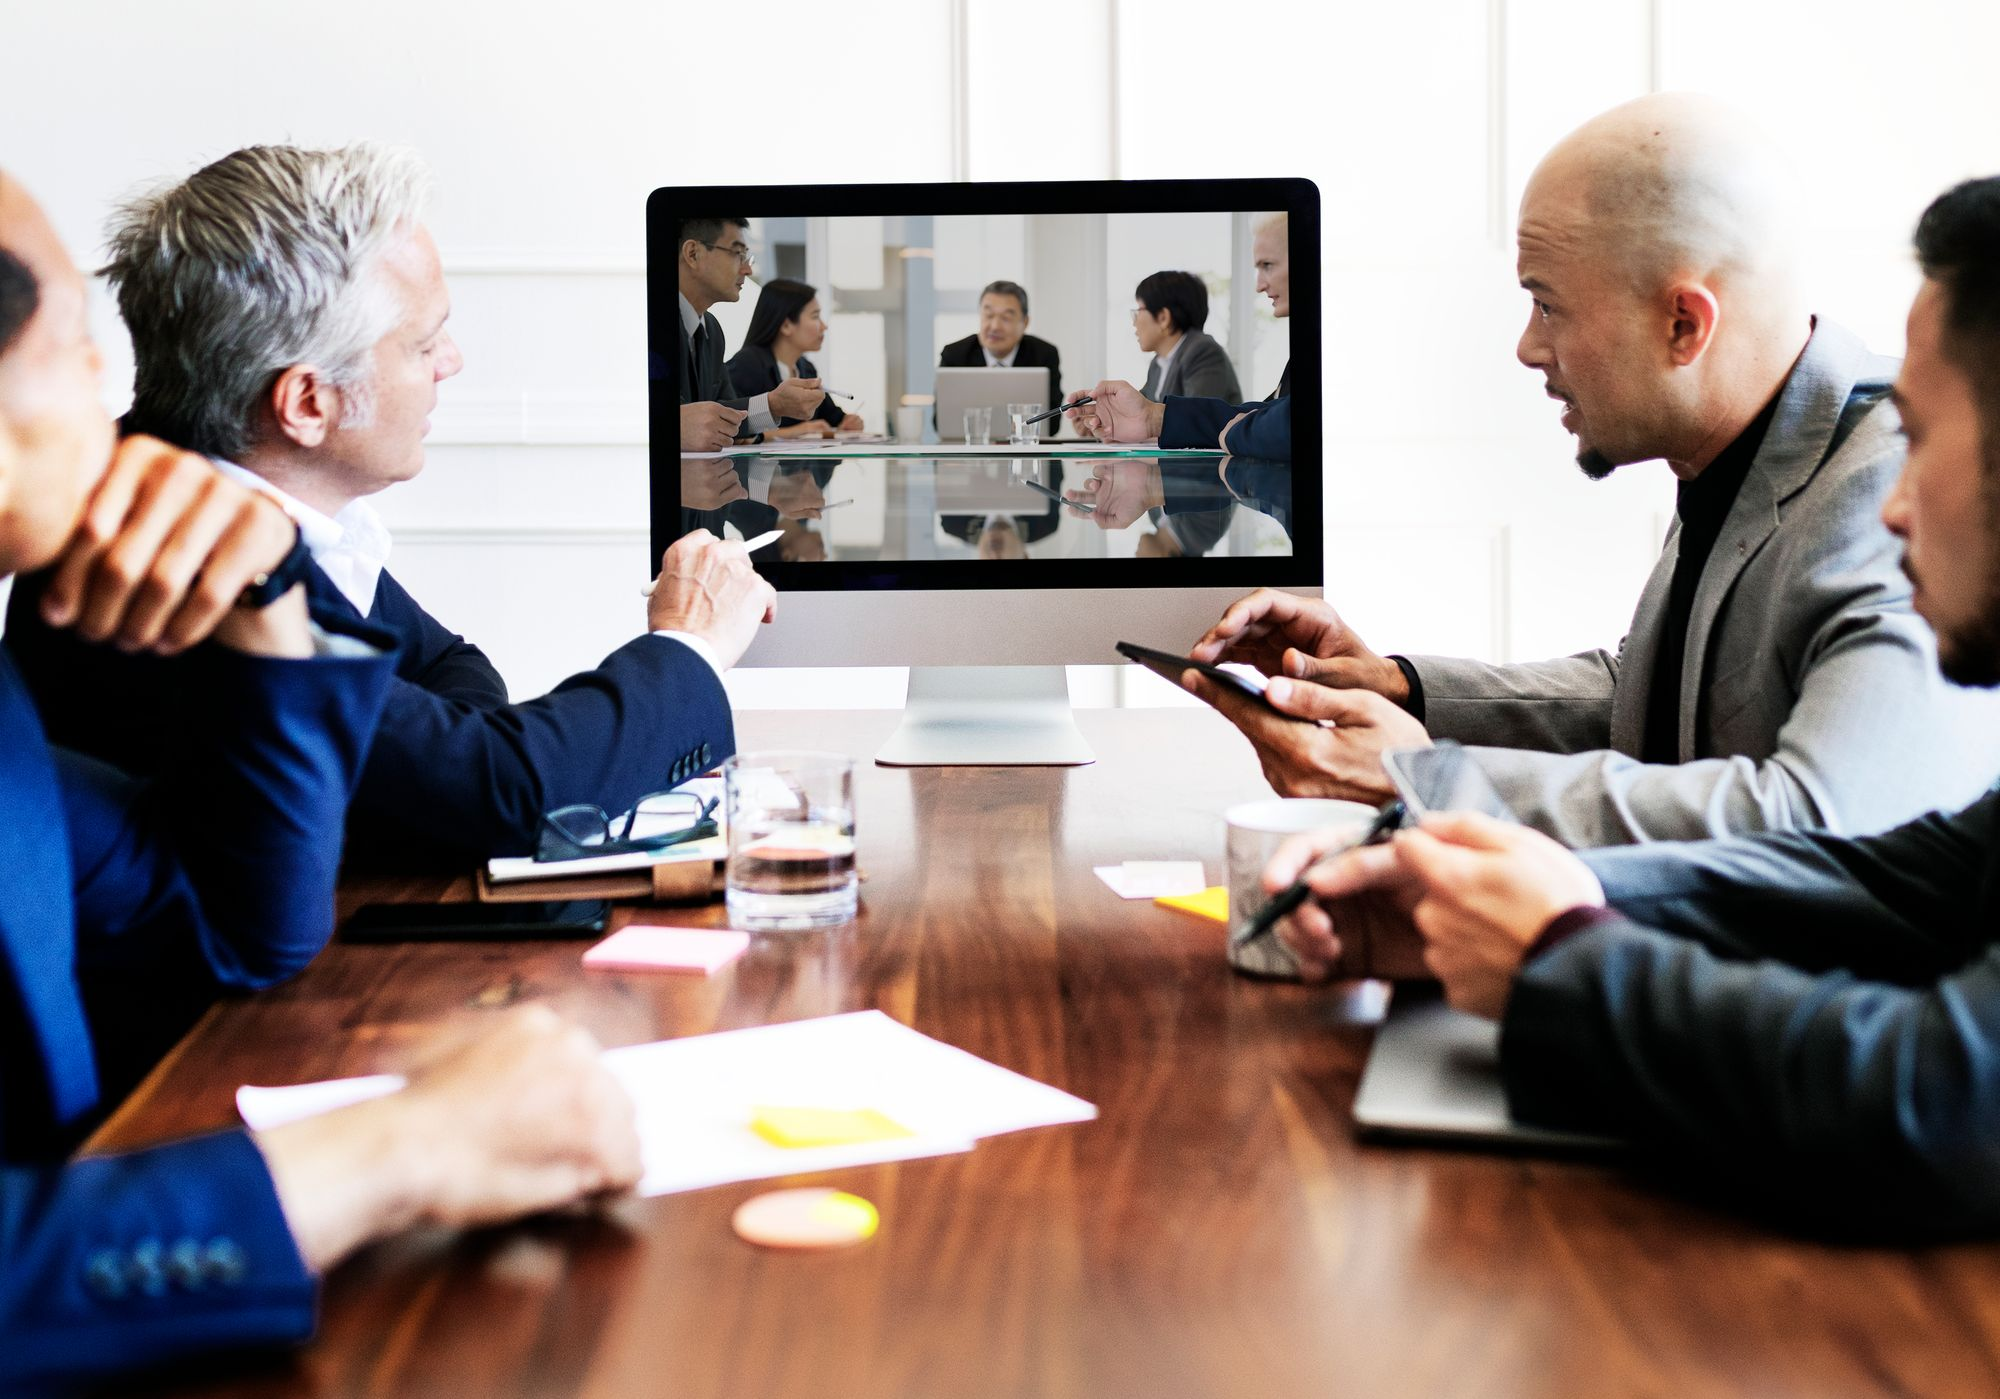 Virtual vs. Face-to-Face – Which Meeting Type is Better?